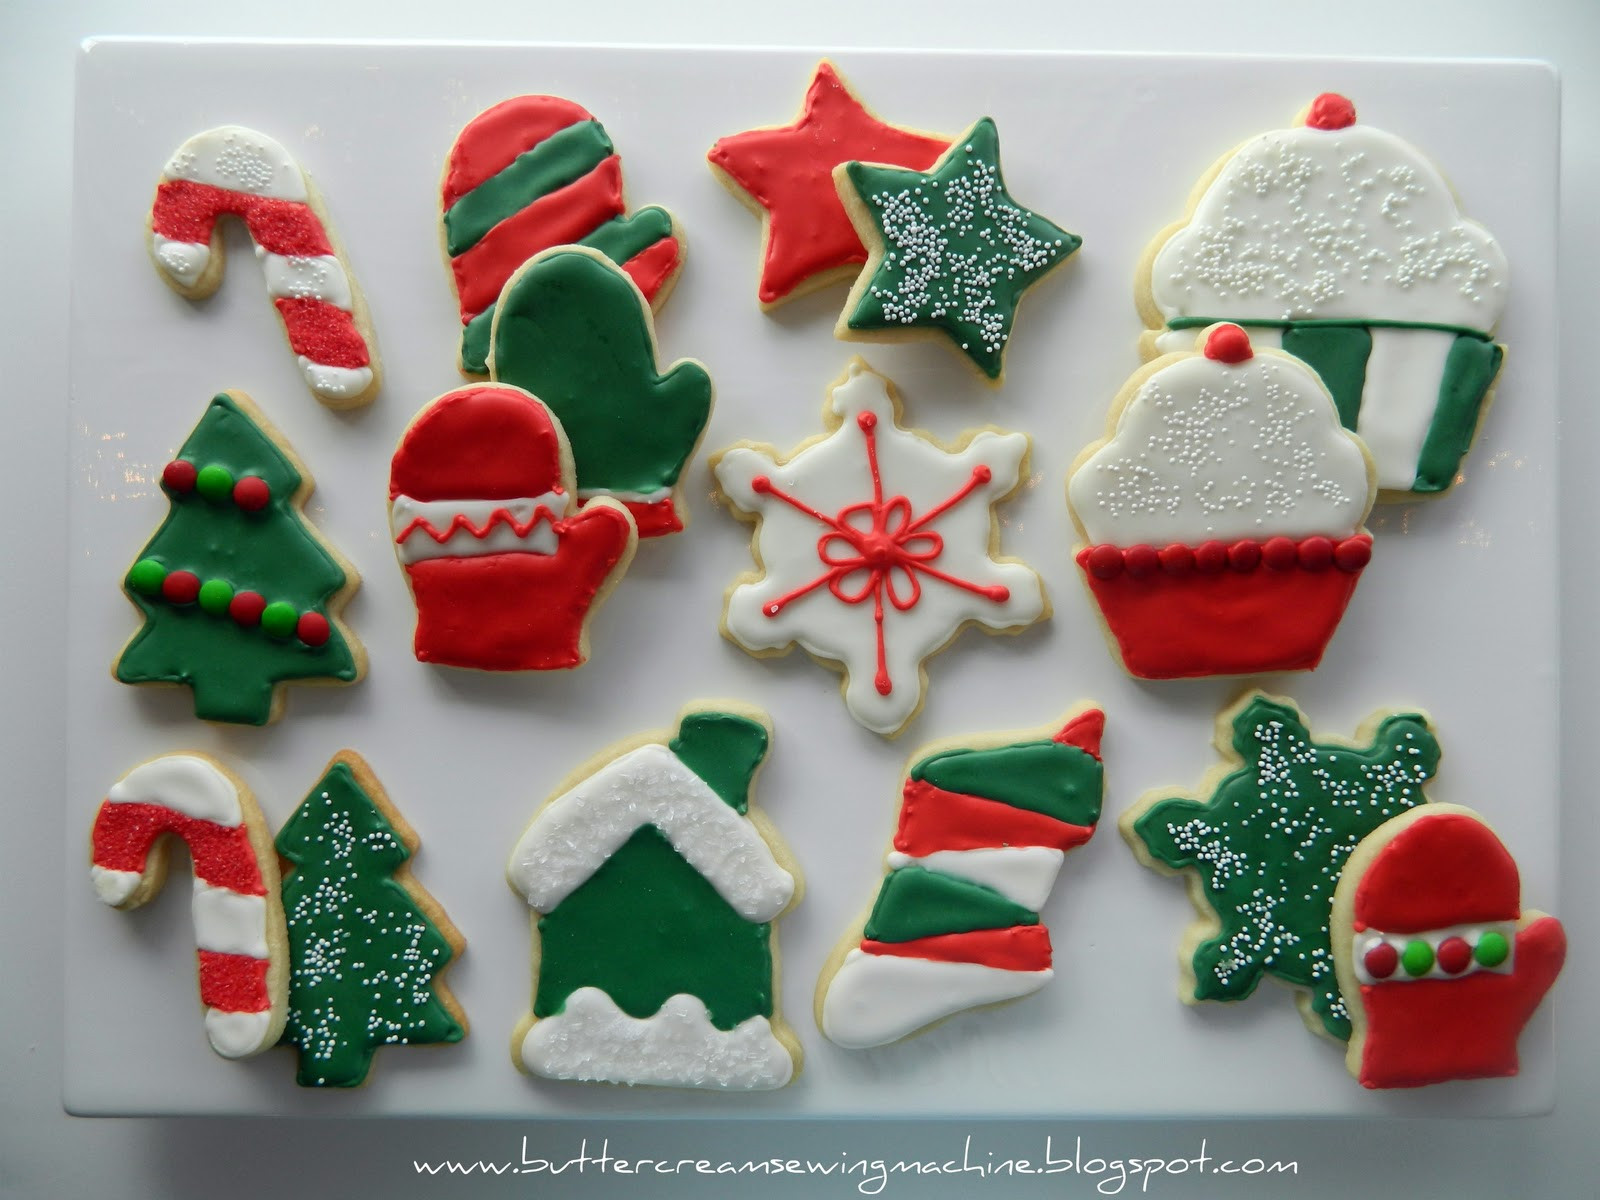 Decorating Christmas Cookies  Buttercream and a Sewing Machine Decorating Christmas Cookies